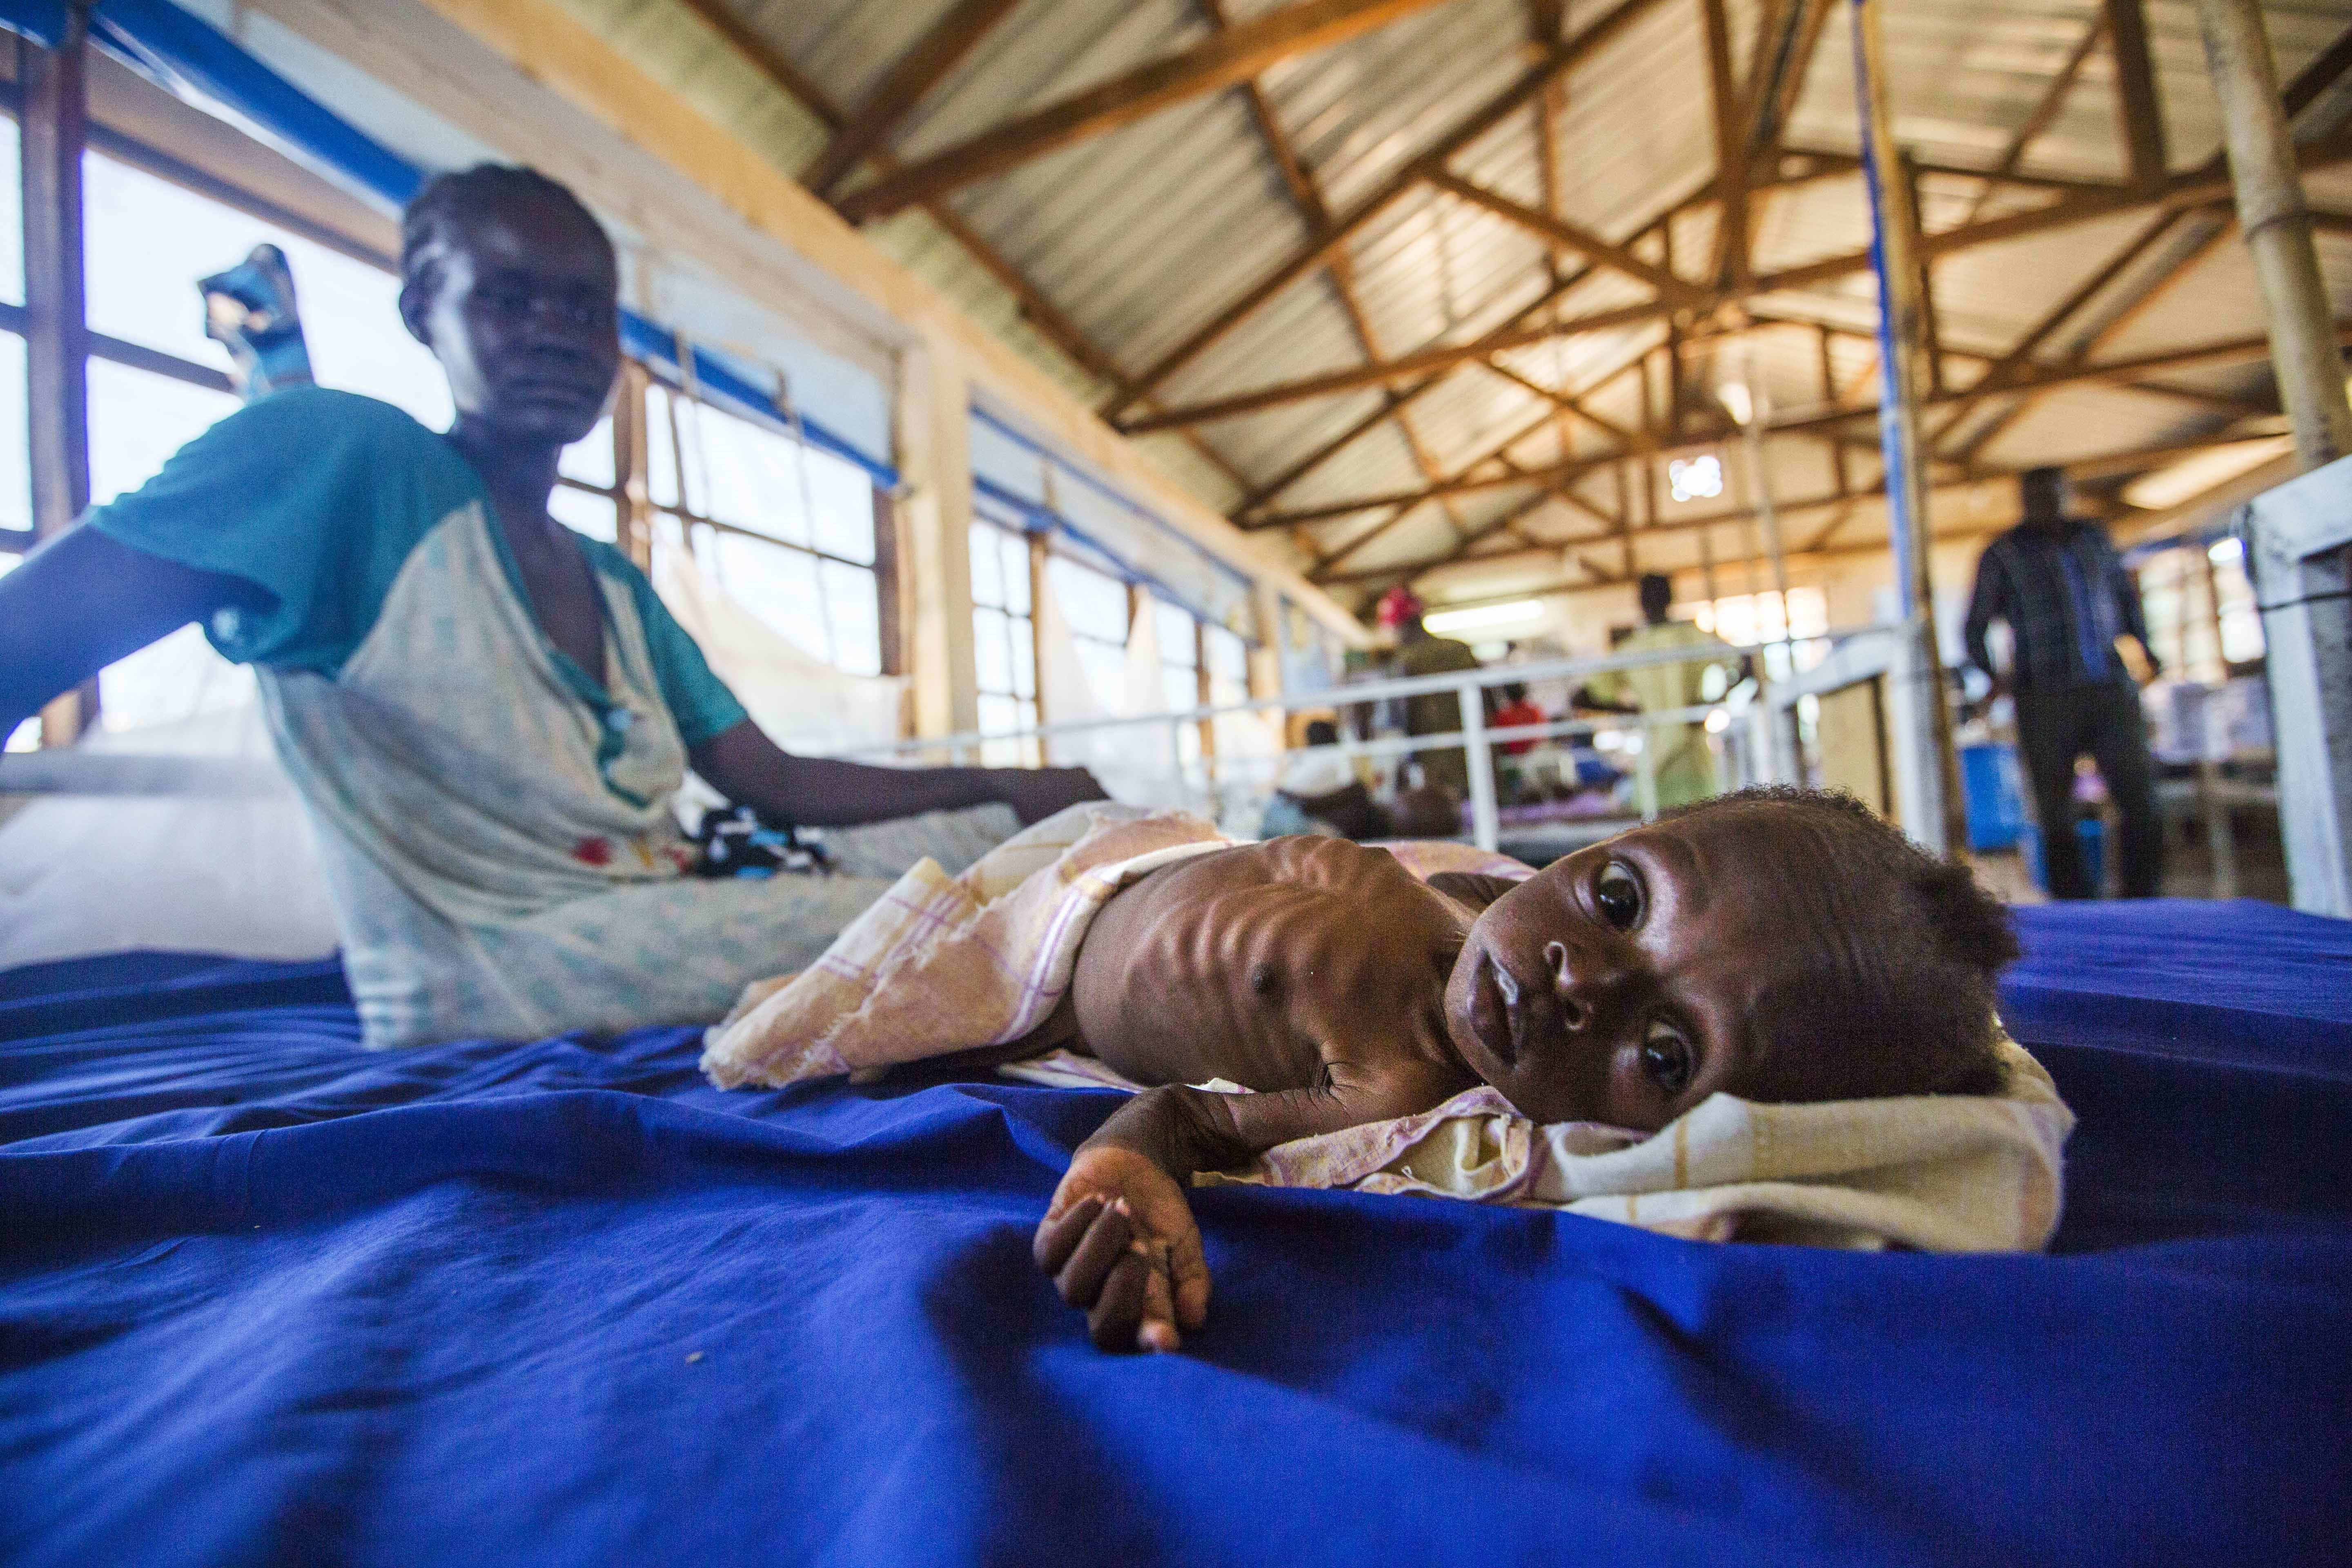 Aseverely malnourished 2-month-old girl lies in a hospital bed next to her mother. In February, South Sudan declared th